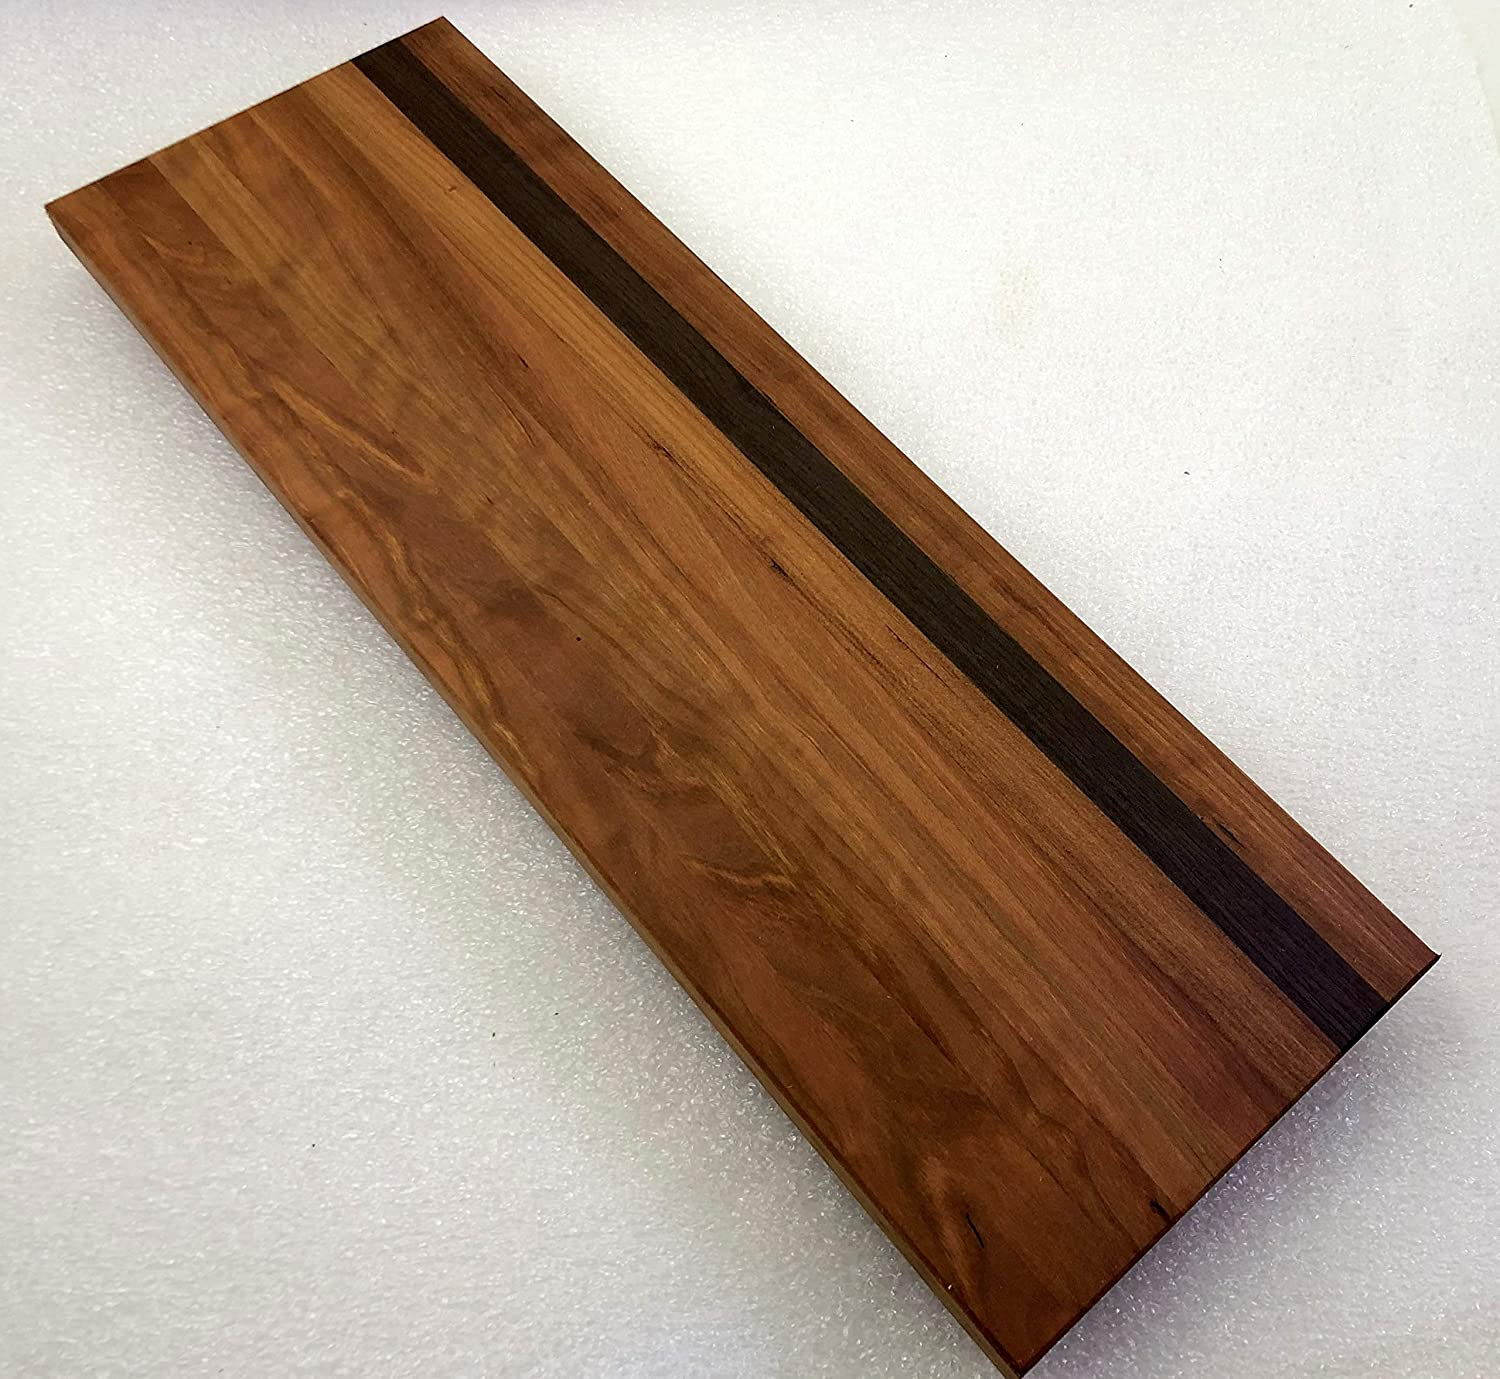 serving piece or cutting board Cherry Handmade Cheese Charcuterie board #111S